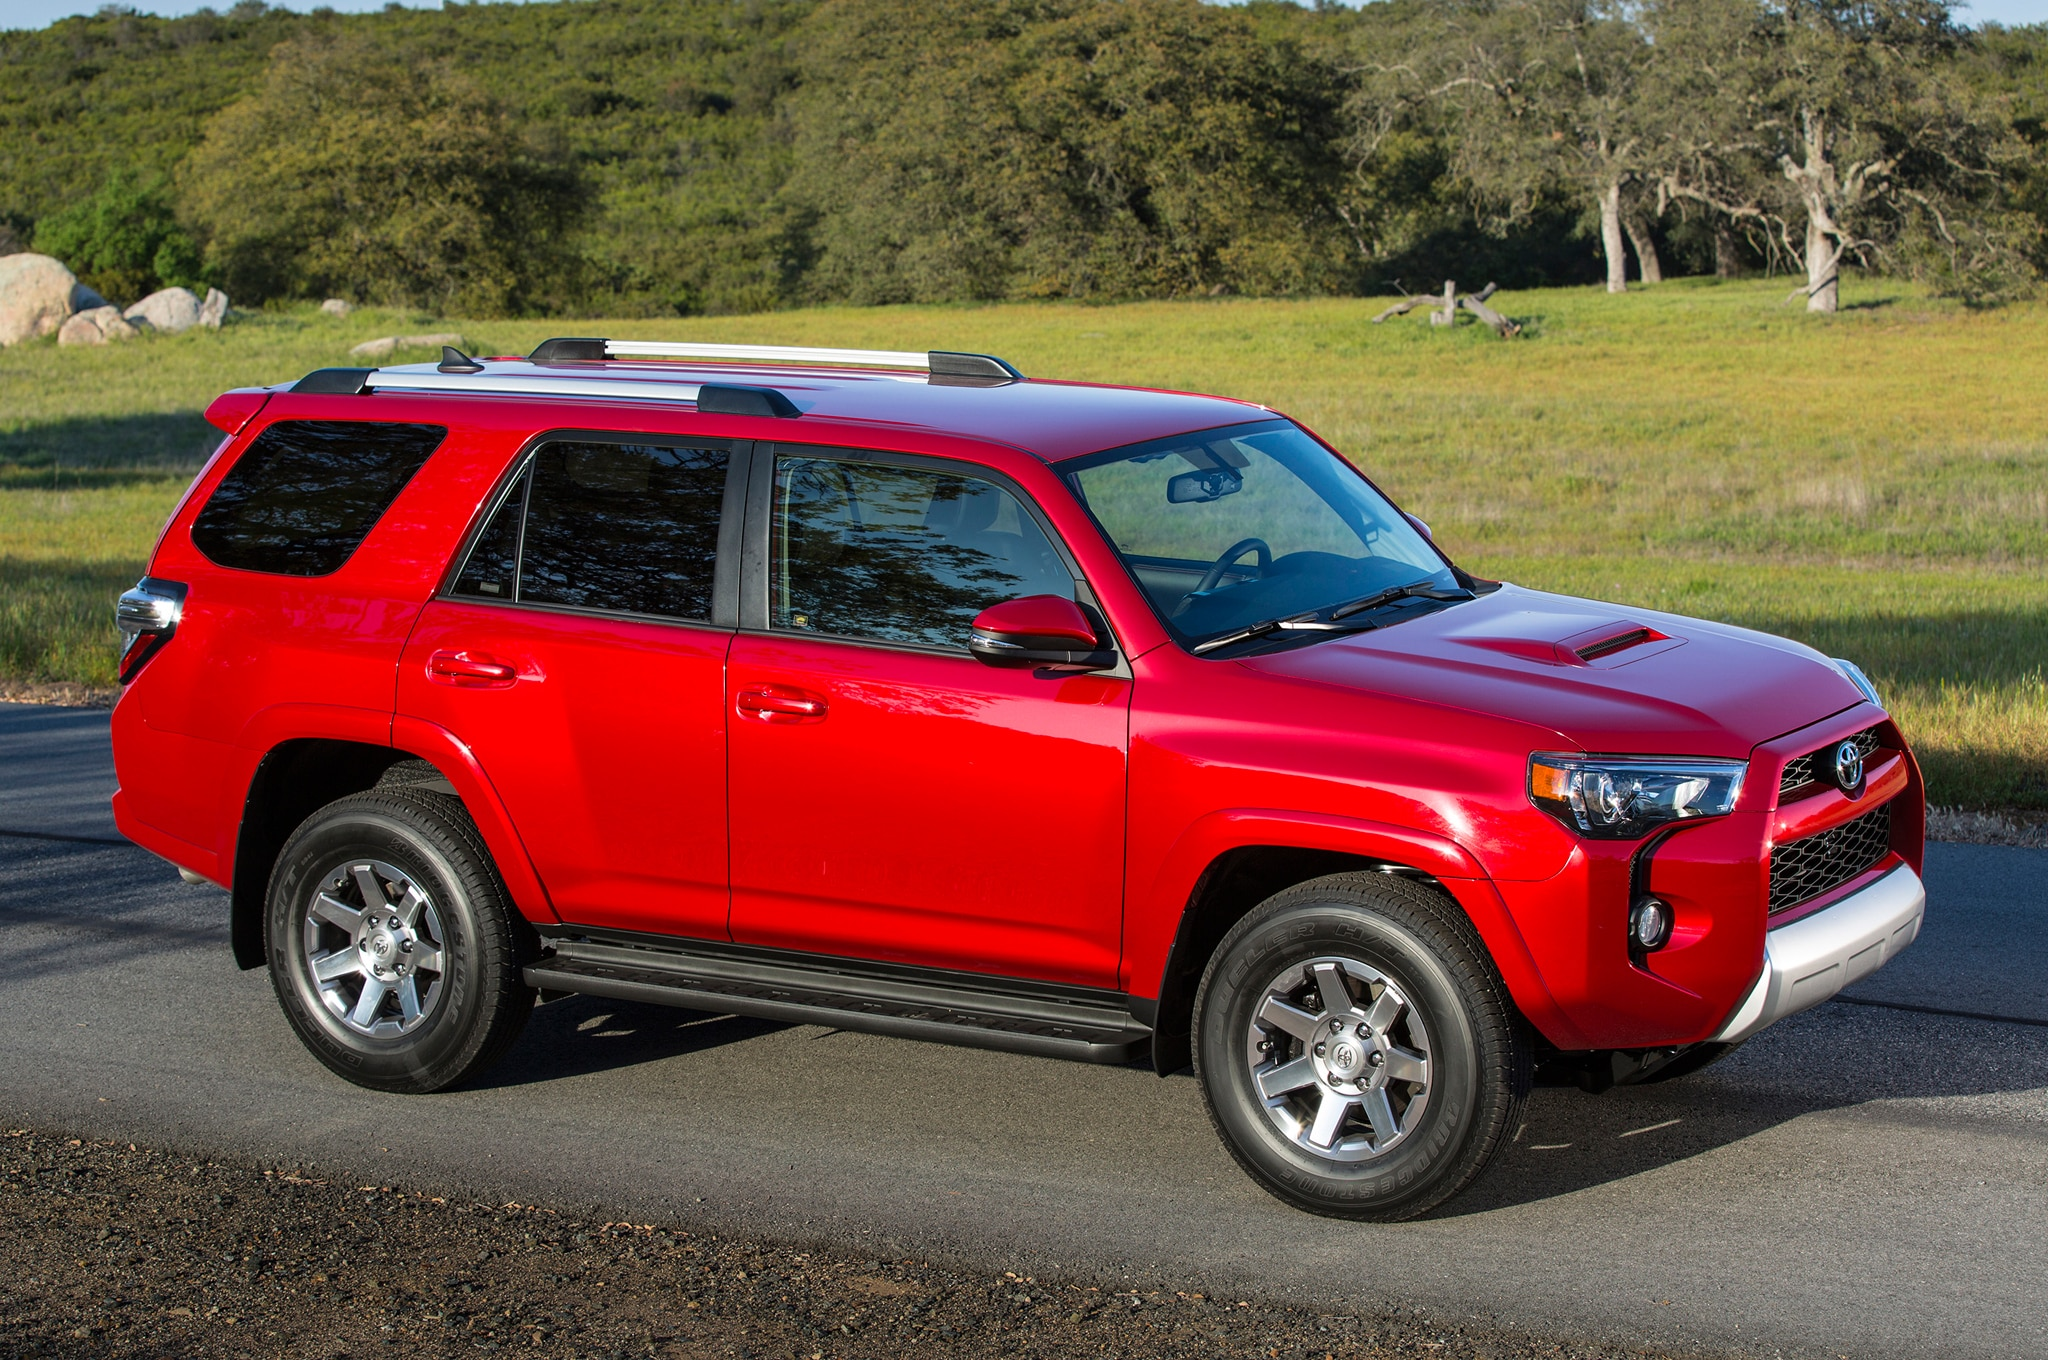 2014 Toyota 4runner Trail side view 01